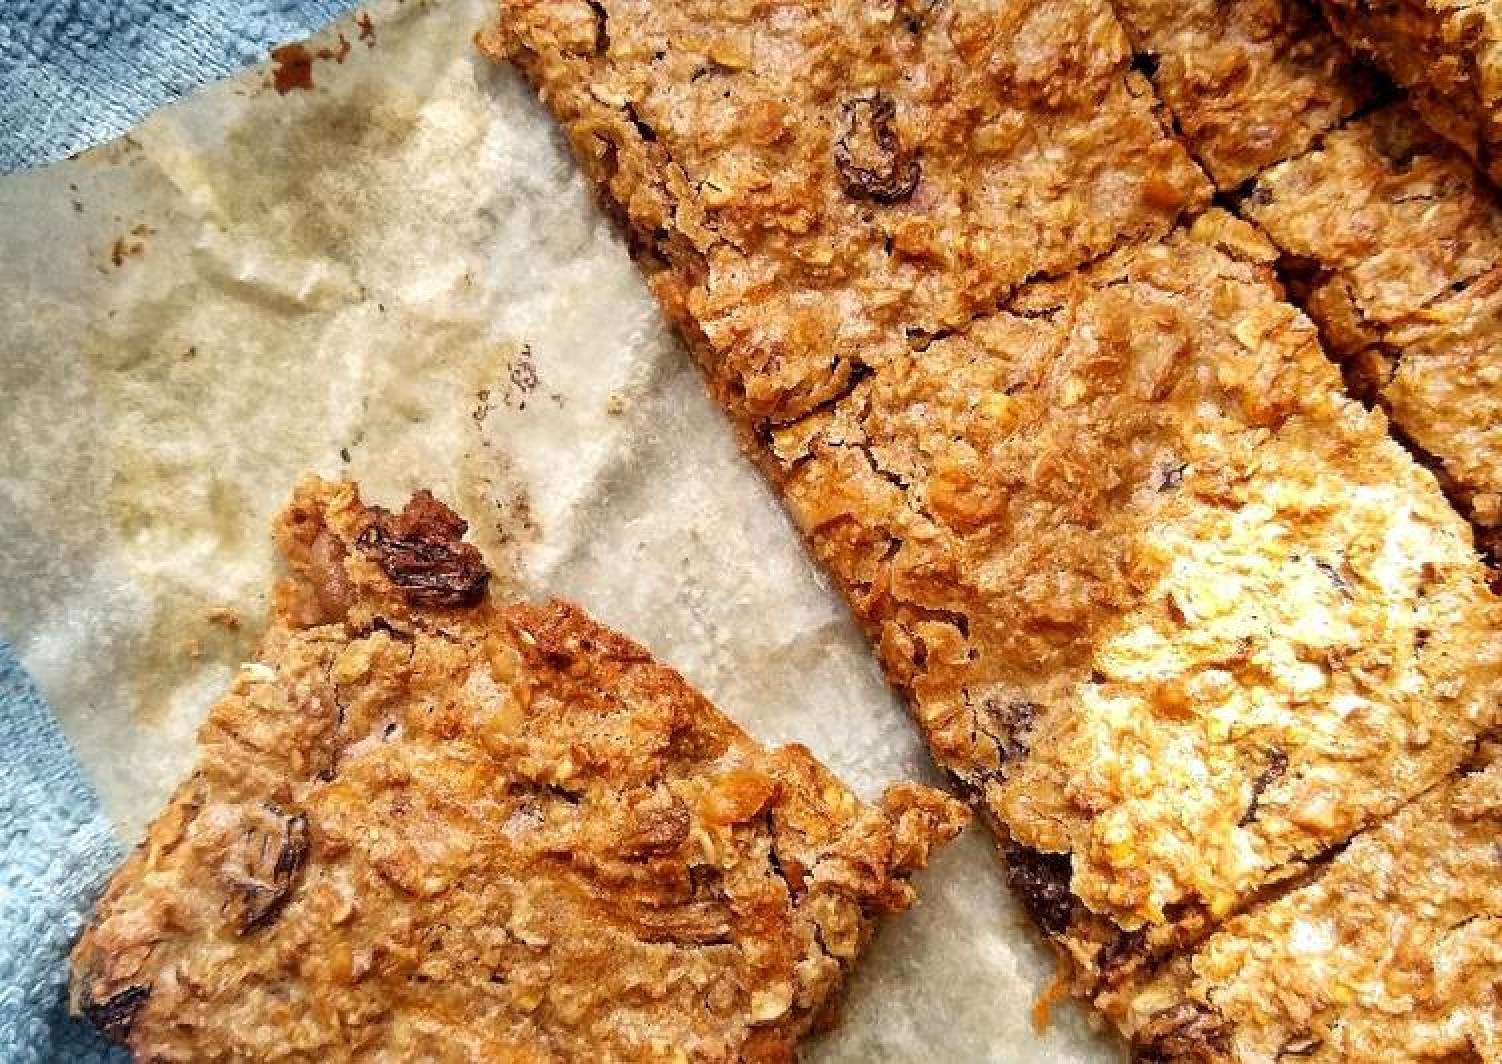 Carrot & Walnut Oat Bars